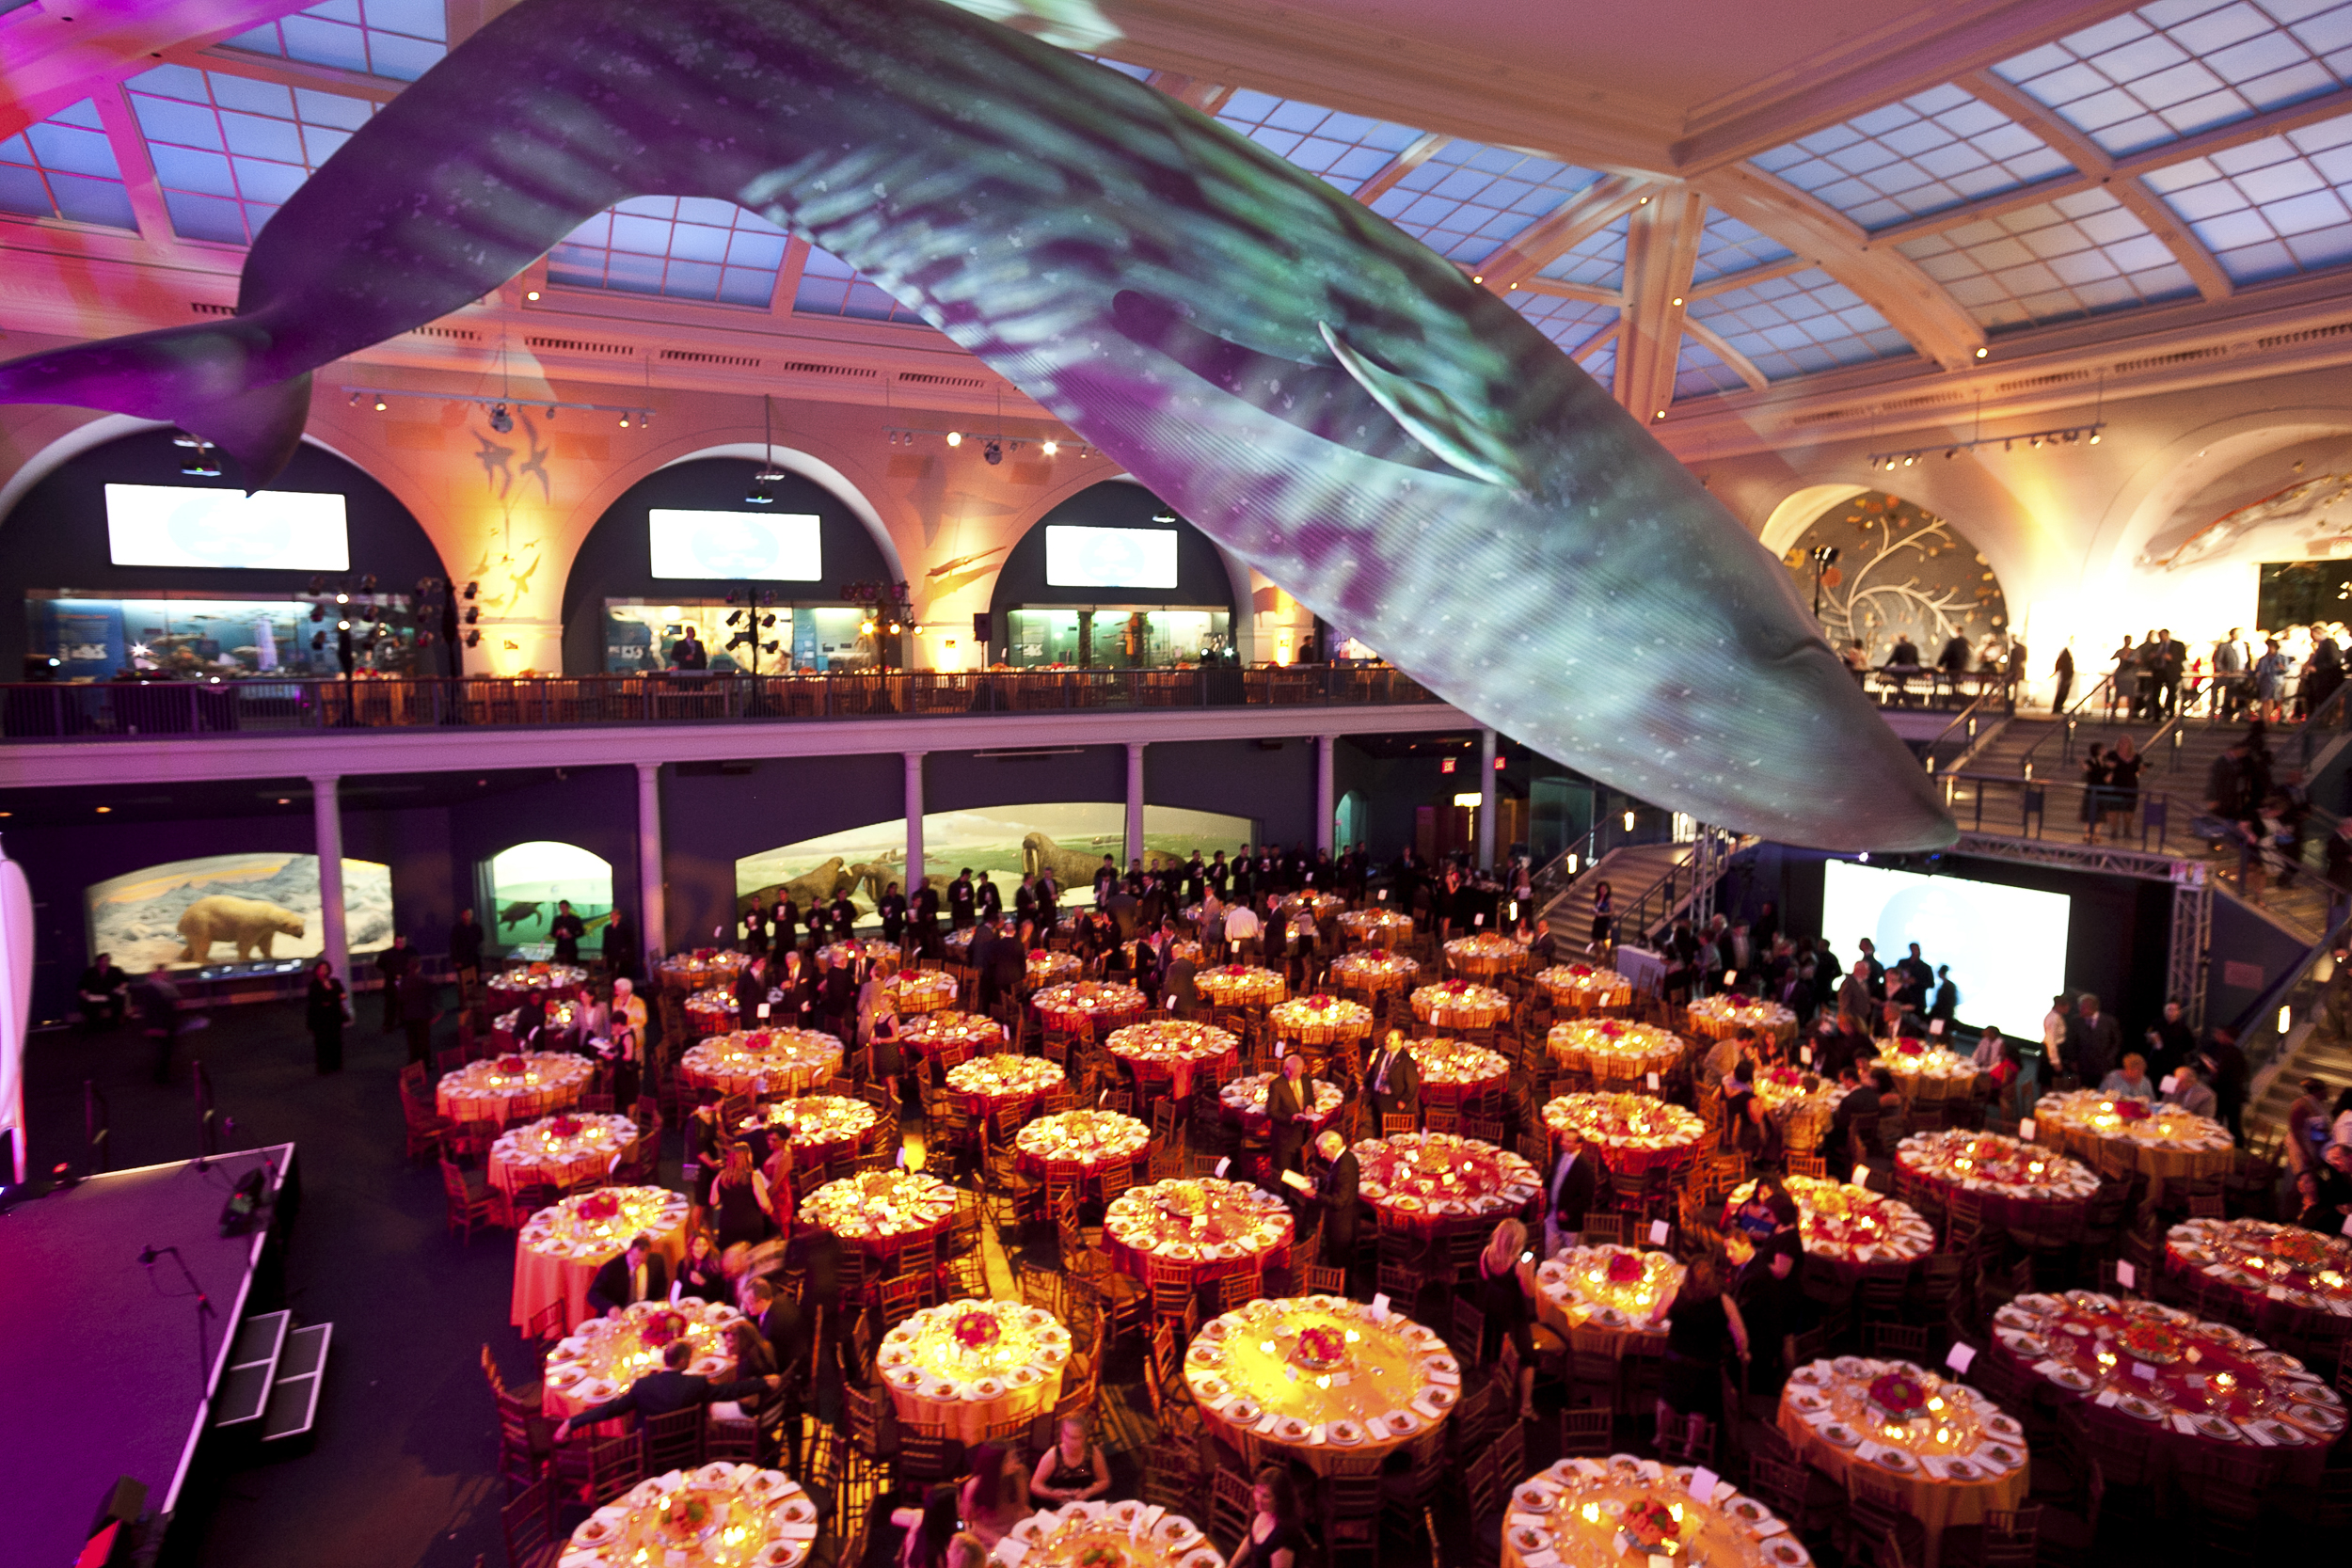 ceci-new-york-gives-back-boys-and-girls-club-of-america-great-futures-gala-2011-invitations-party-decor-museum-of-natural-history-event--4.jpg